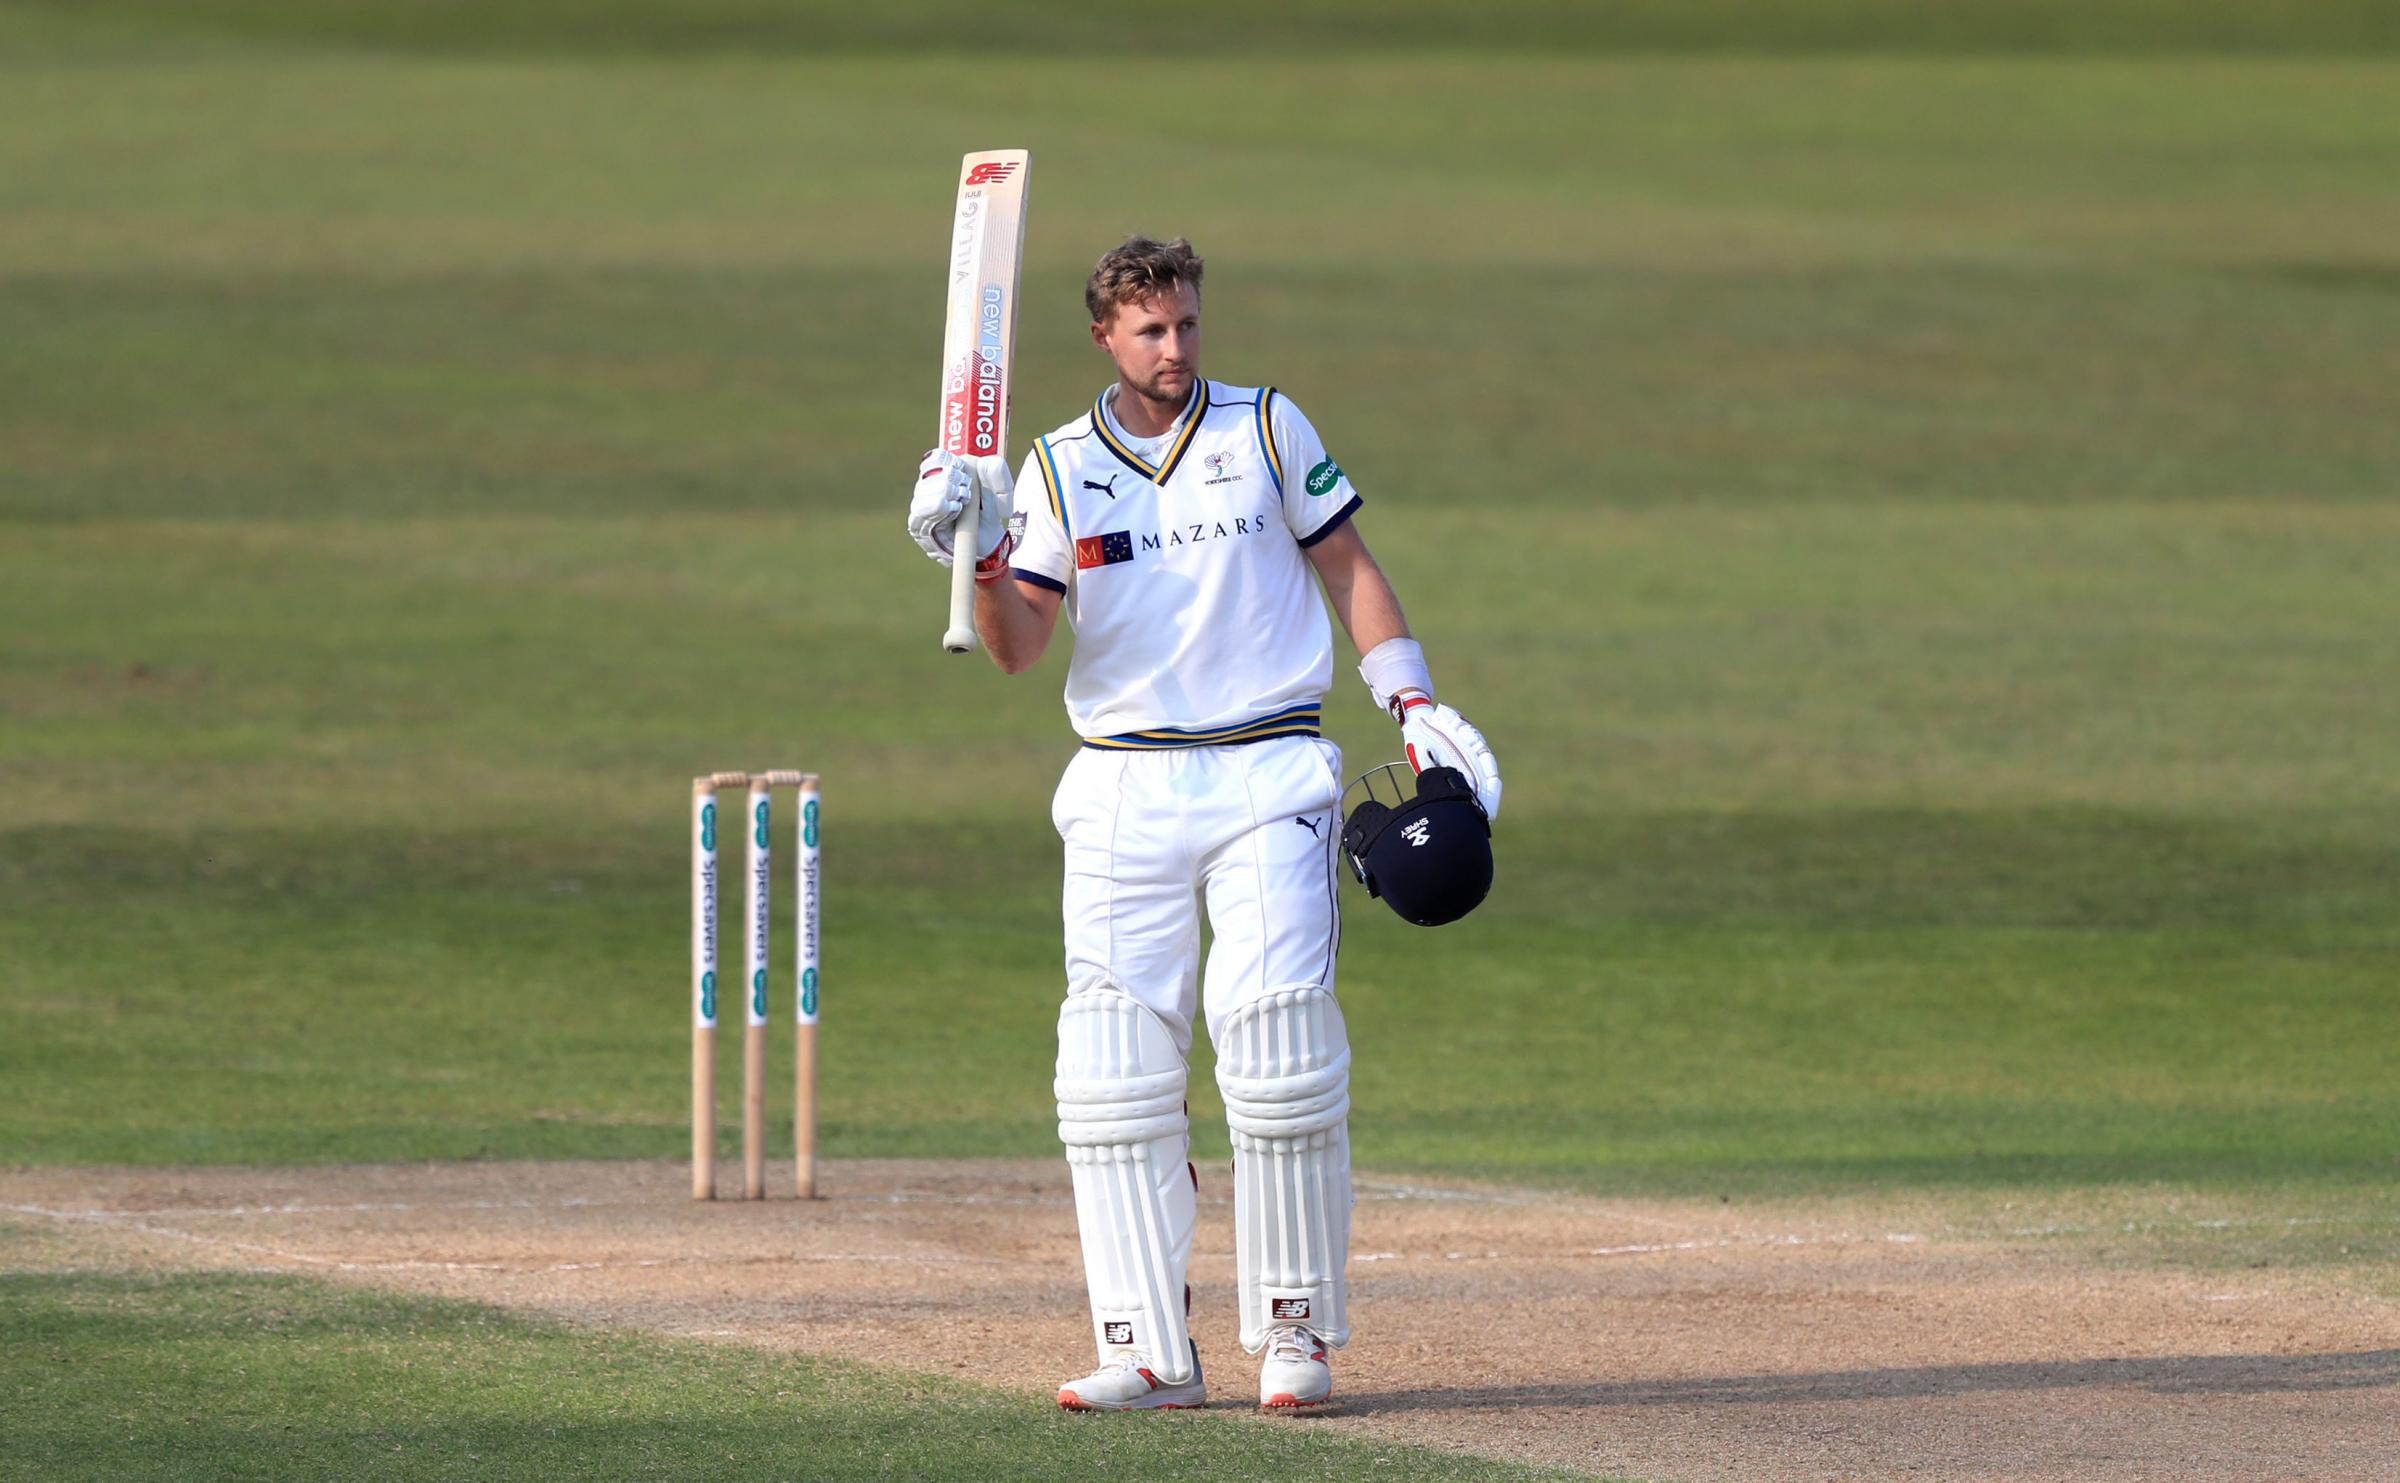 Yorkshire's Joe Root celebrates reaching his century during day four of Specsavers County Championship Division One match at Trent Bridge, Nottingham. PRESS ASSOCIATION Photo. Picture date: Monday April 8, 2019. See PA story CRICKET Nottinghamshire. P